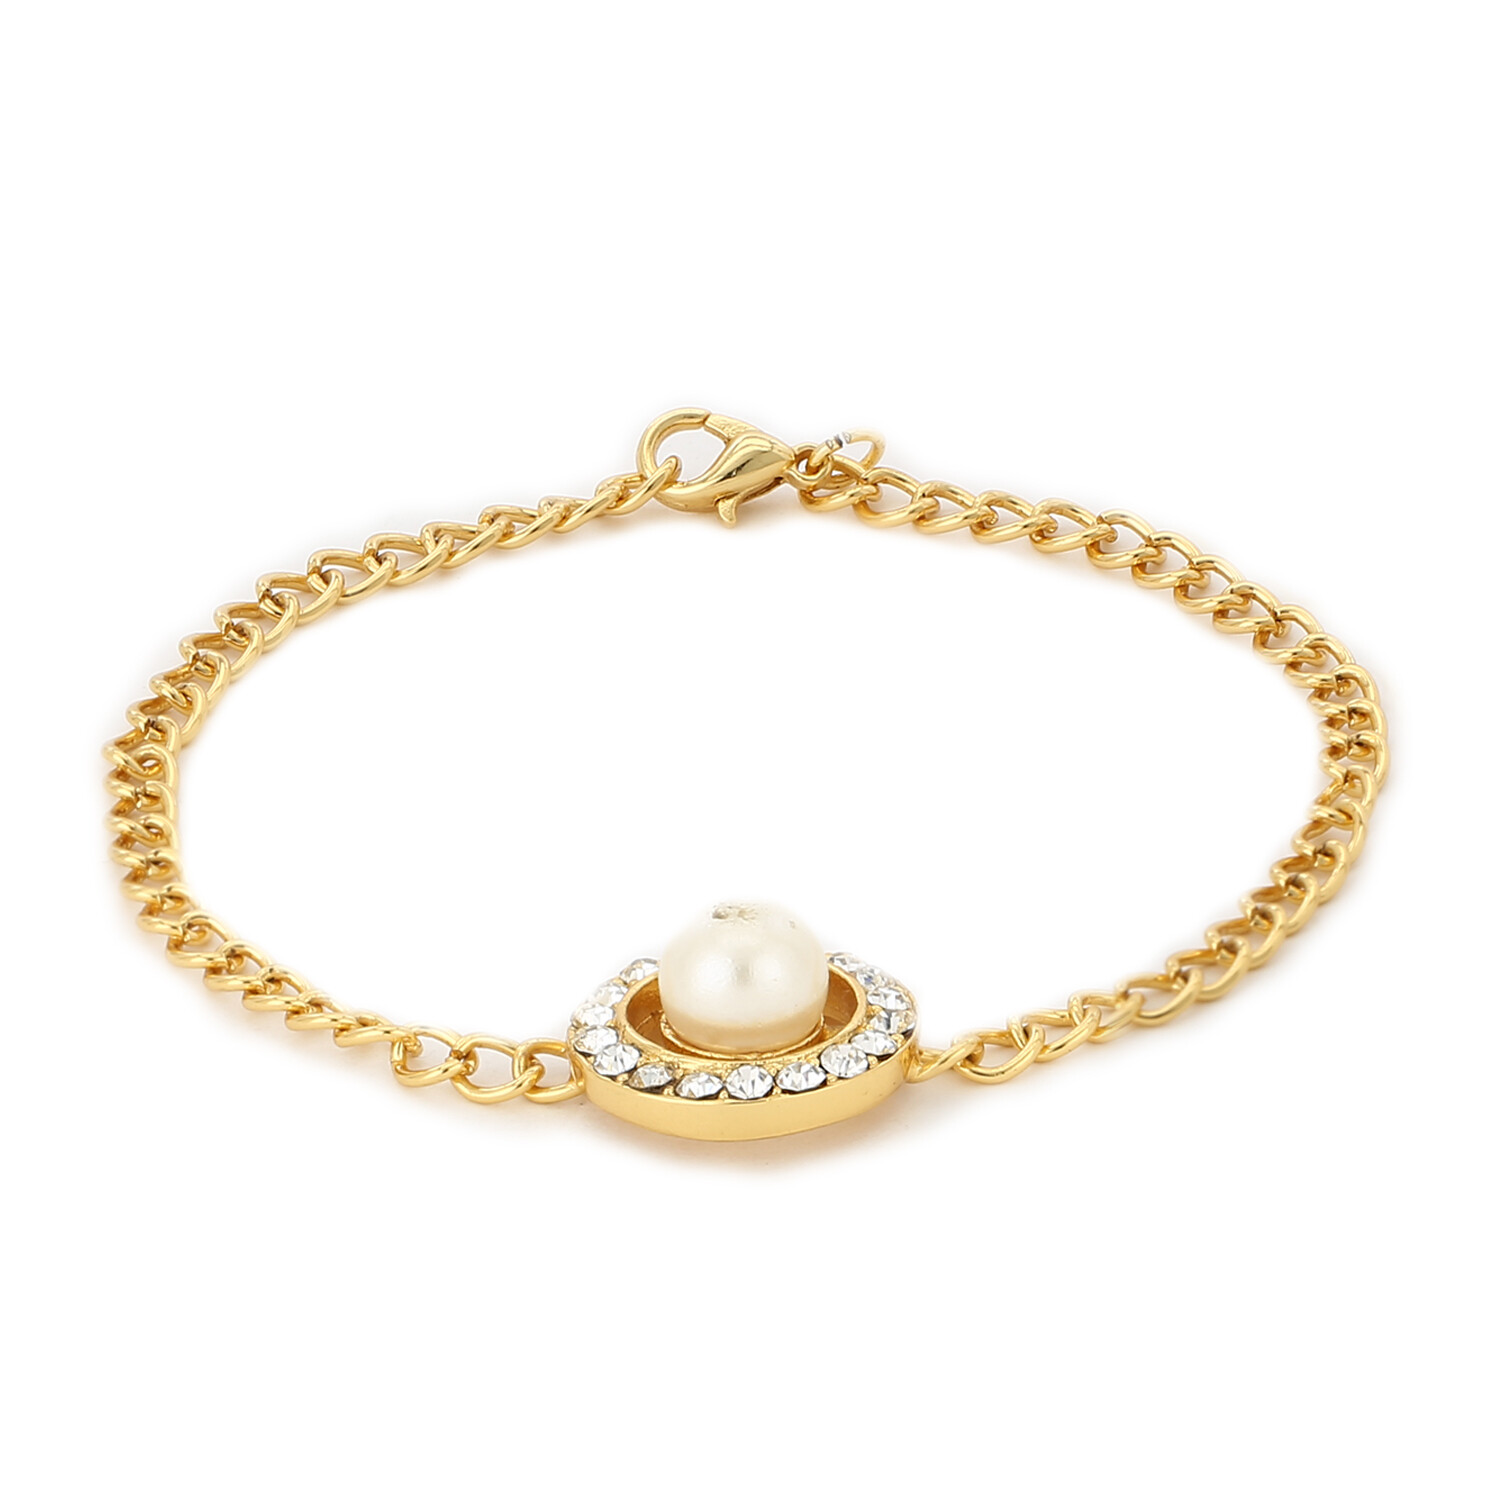 Estele 24Kt Gold Tone Plated Pearl With White Austrian Crystal Stone Bracelet